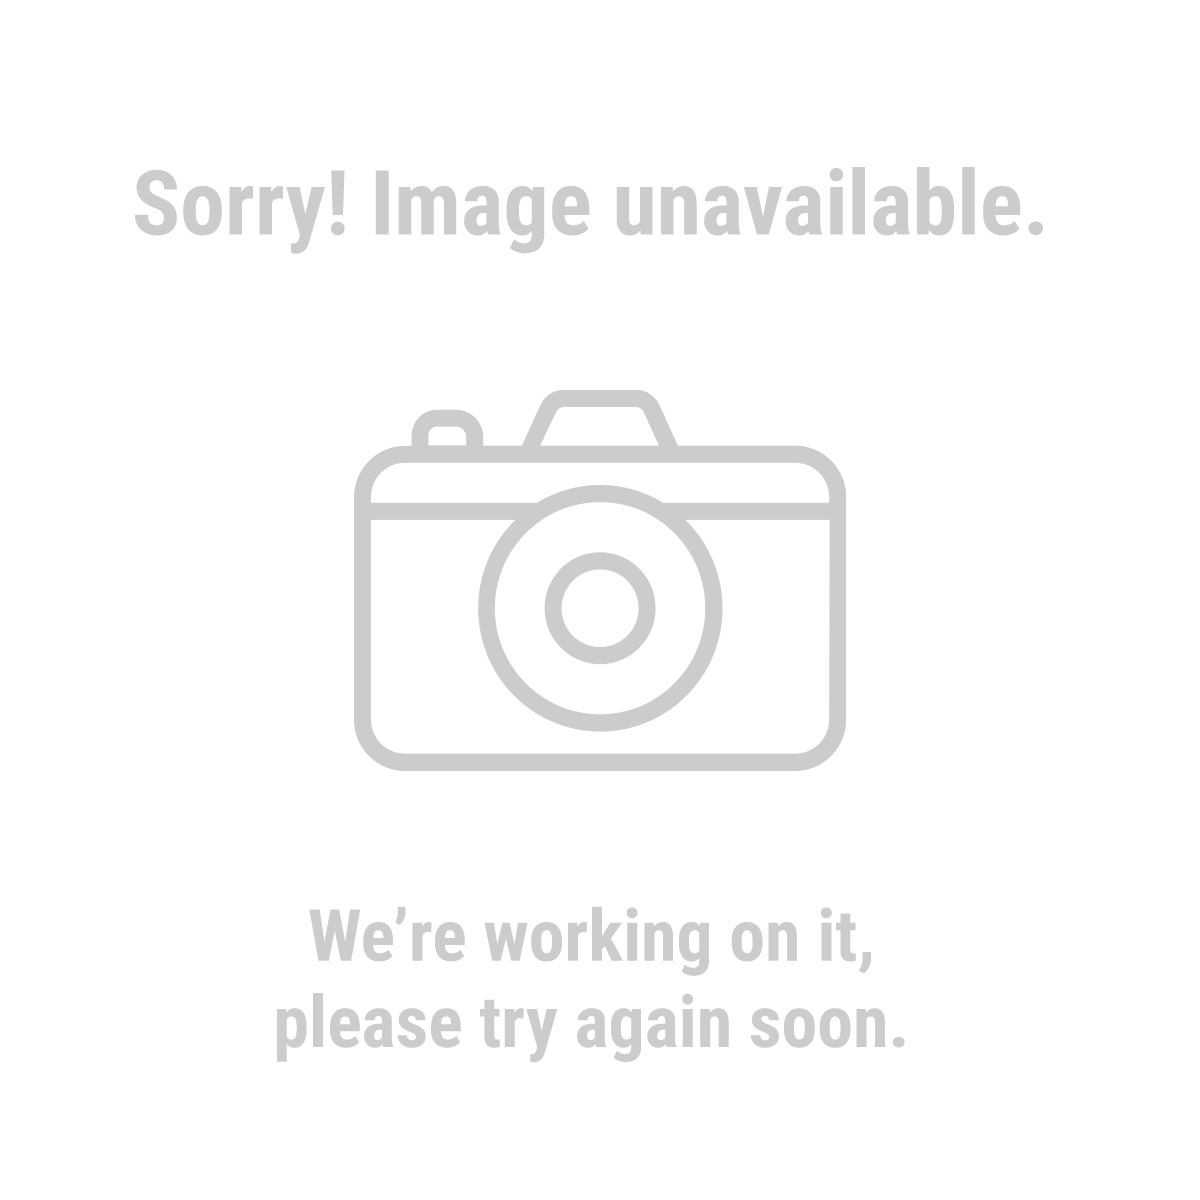 93306 16 Oz. Powder Coat Paint, Matte Black